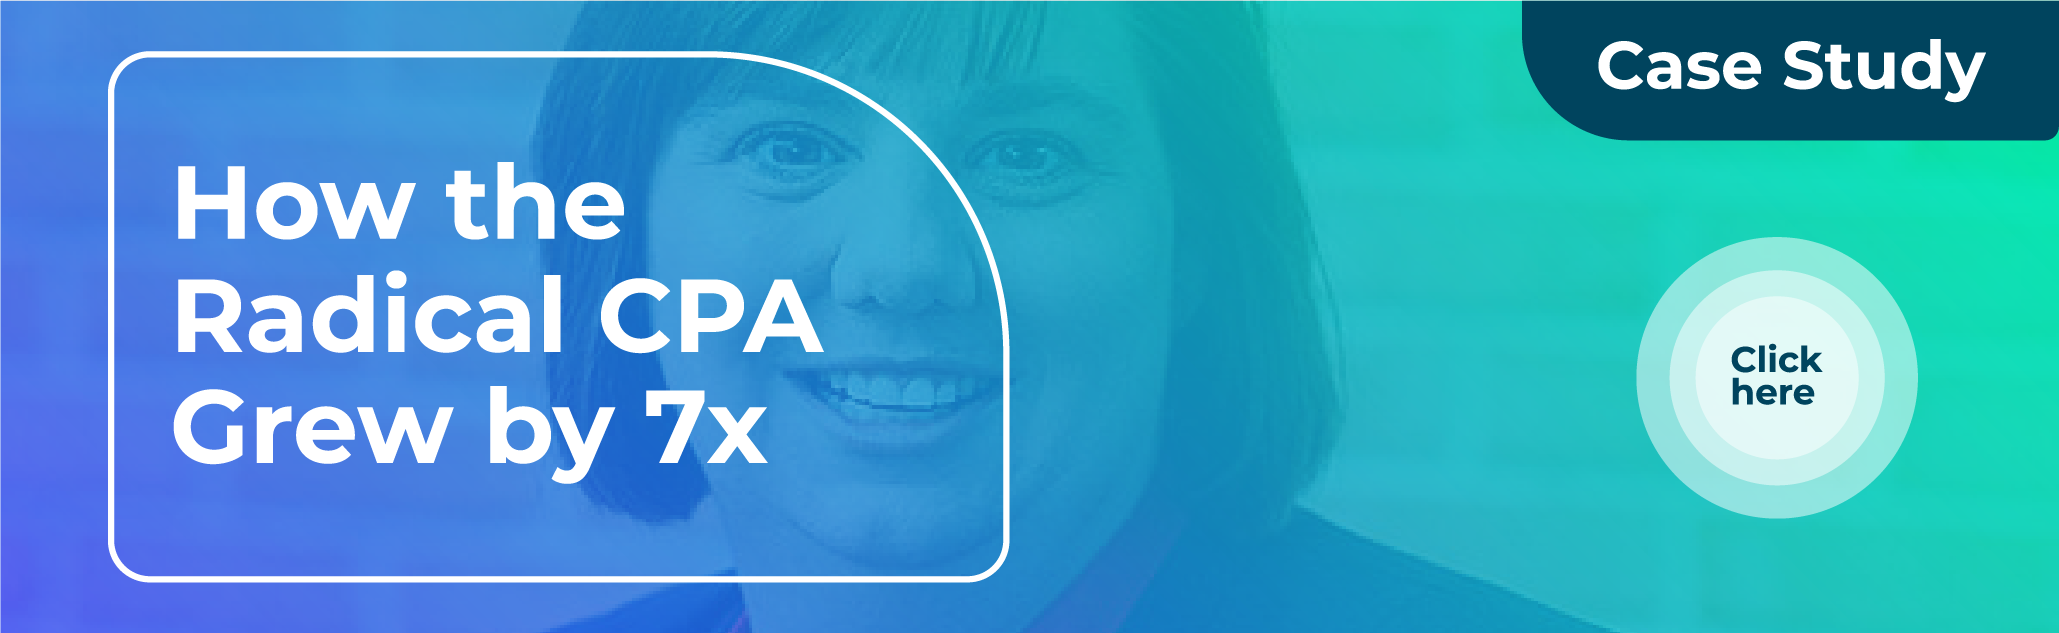 Case study how the radical CPA grew by 7x | Botkeeper